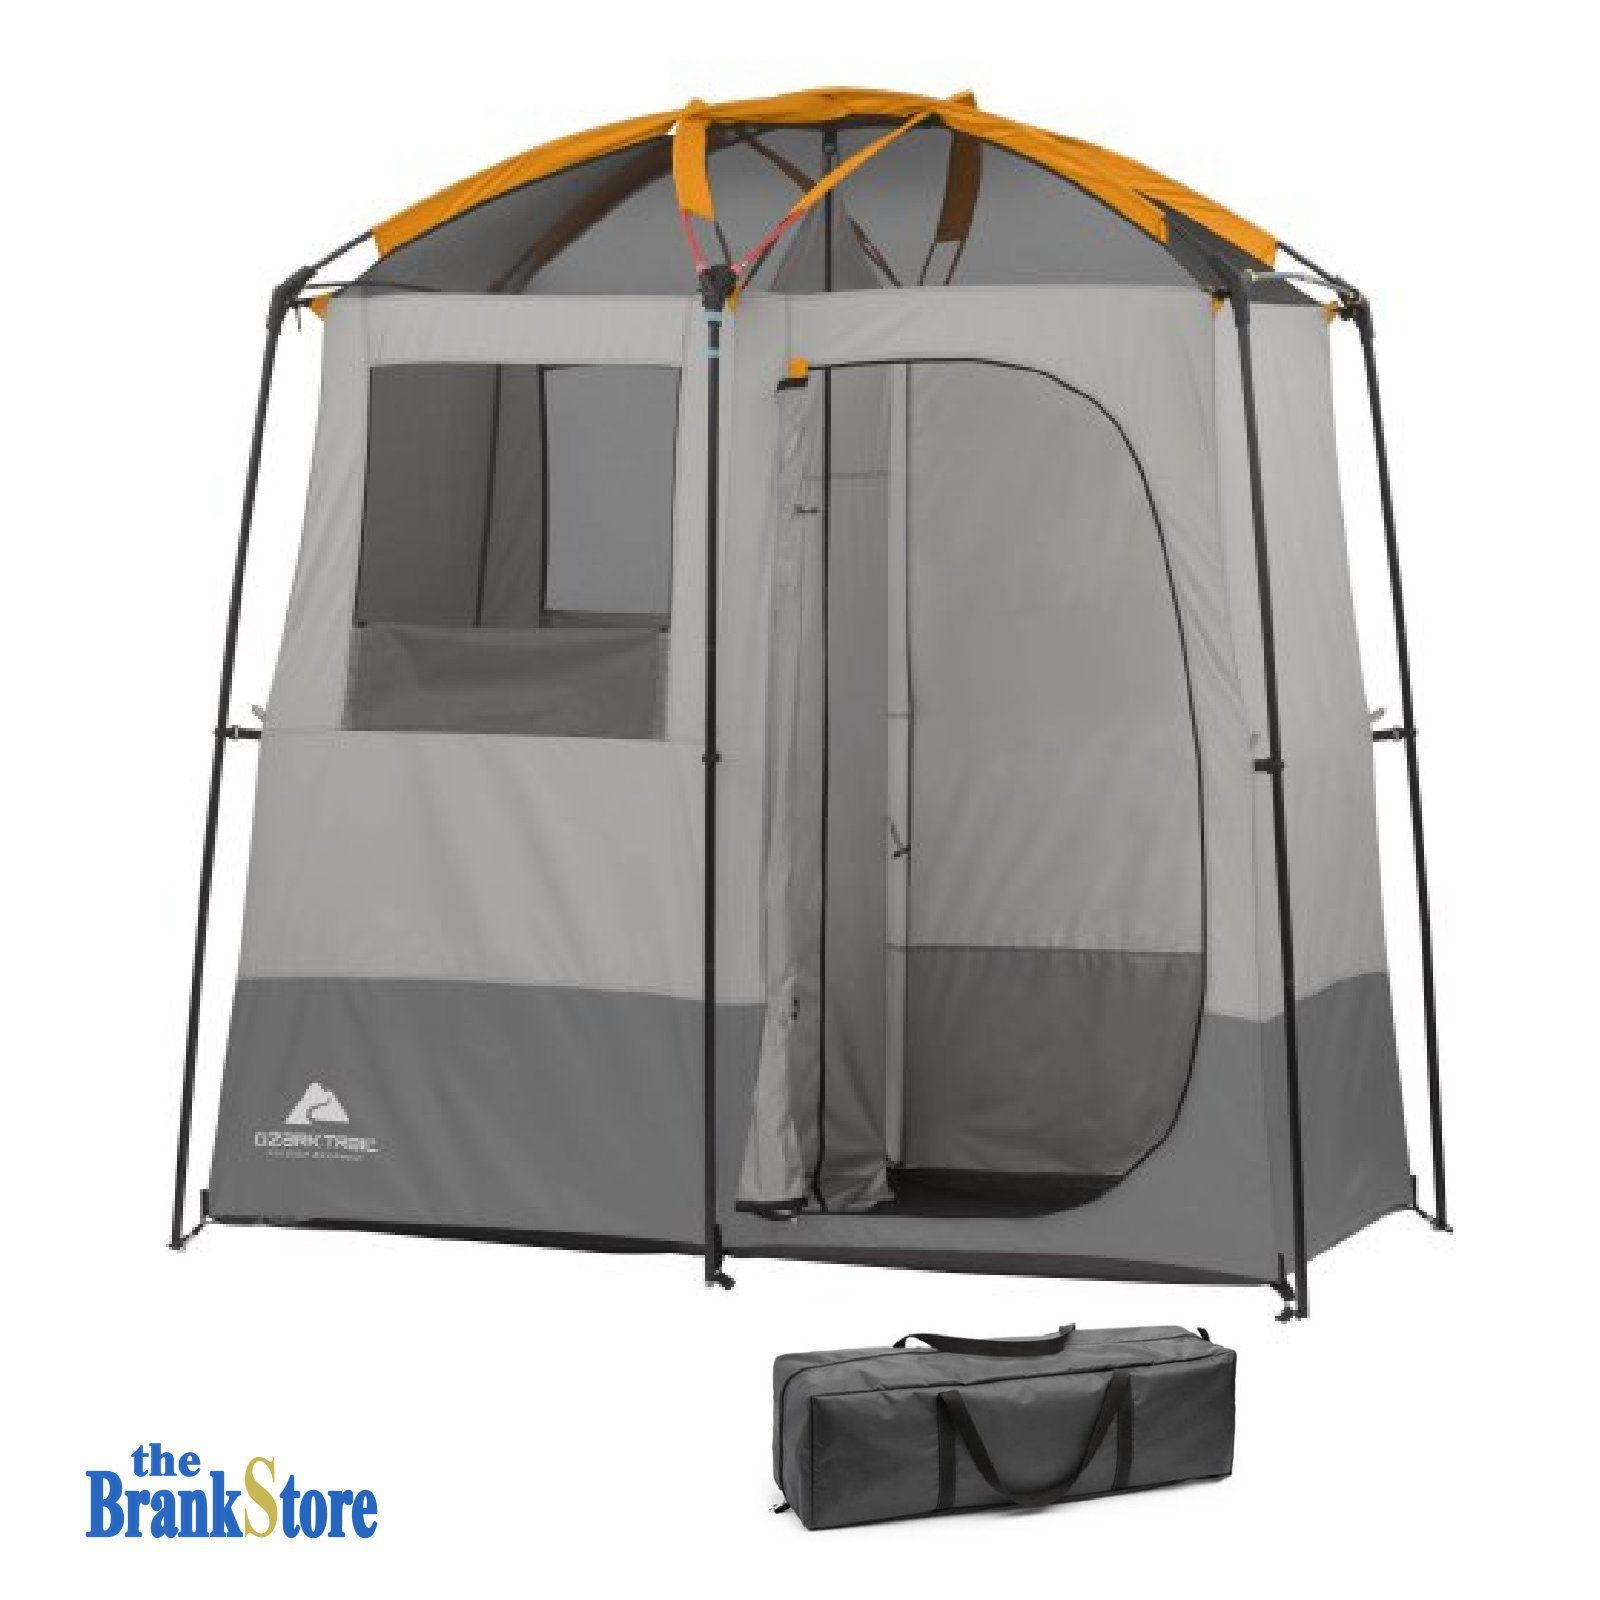 camping shower tent outdoor changing room privacy pop up portable